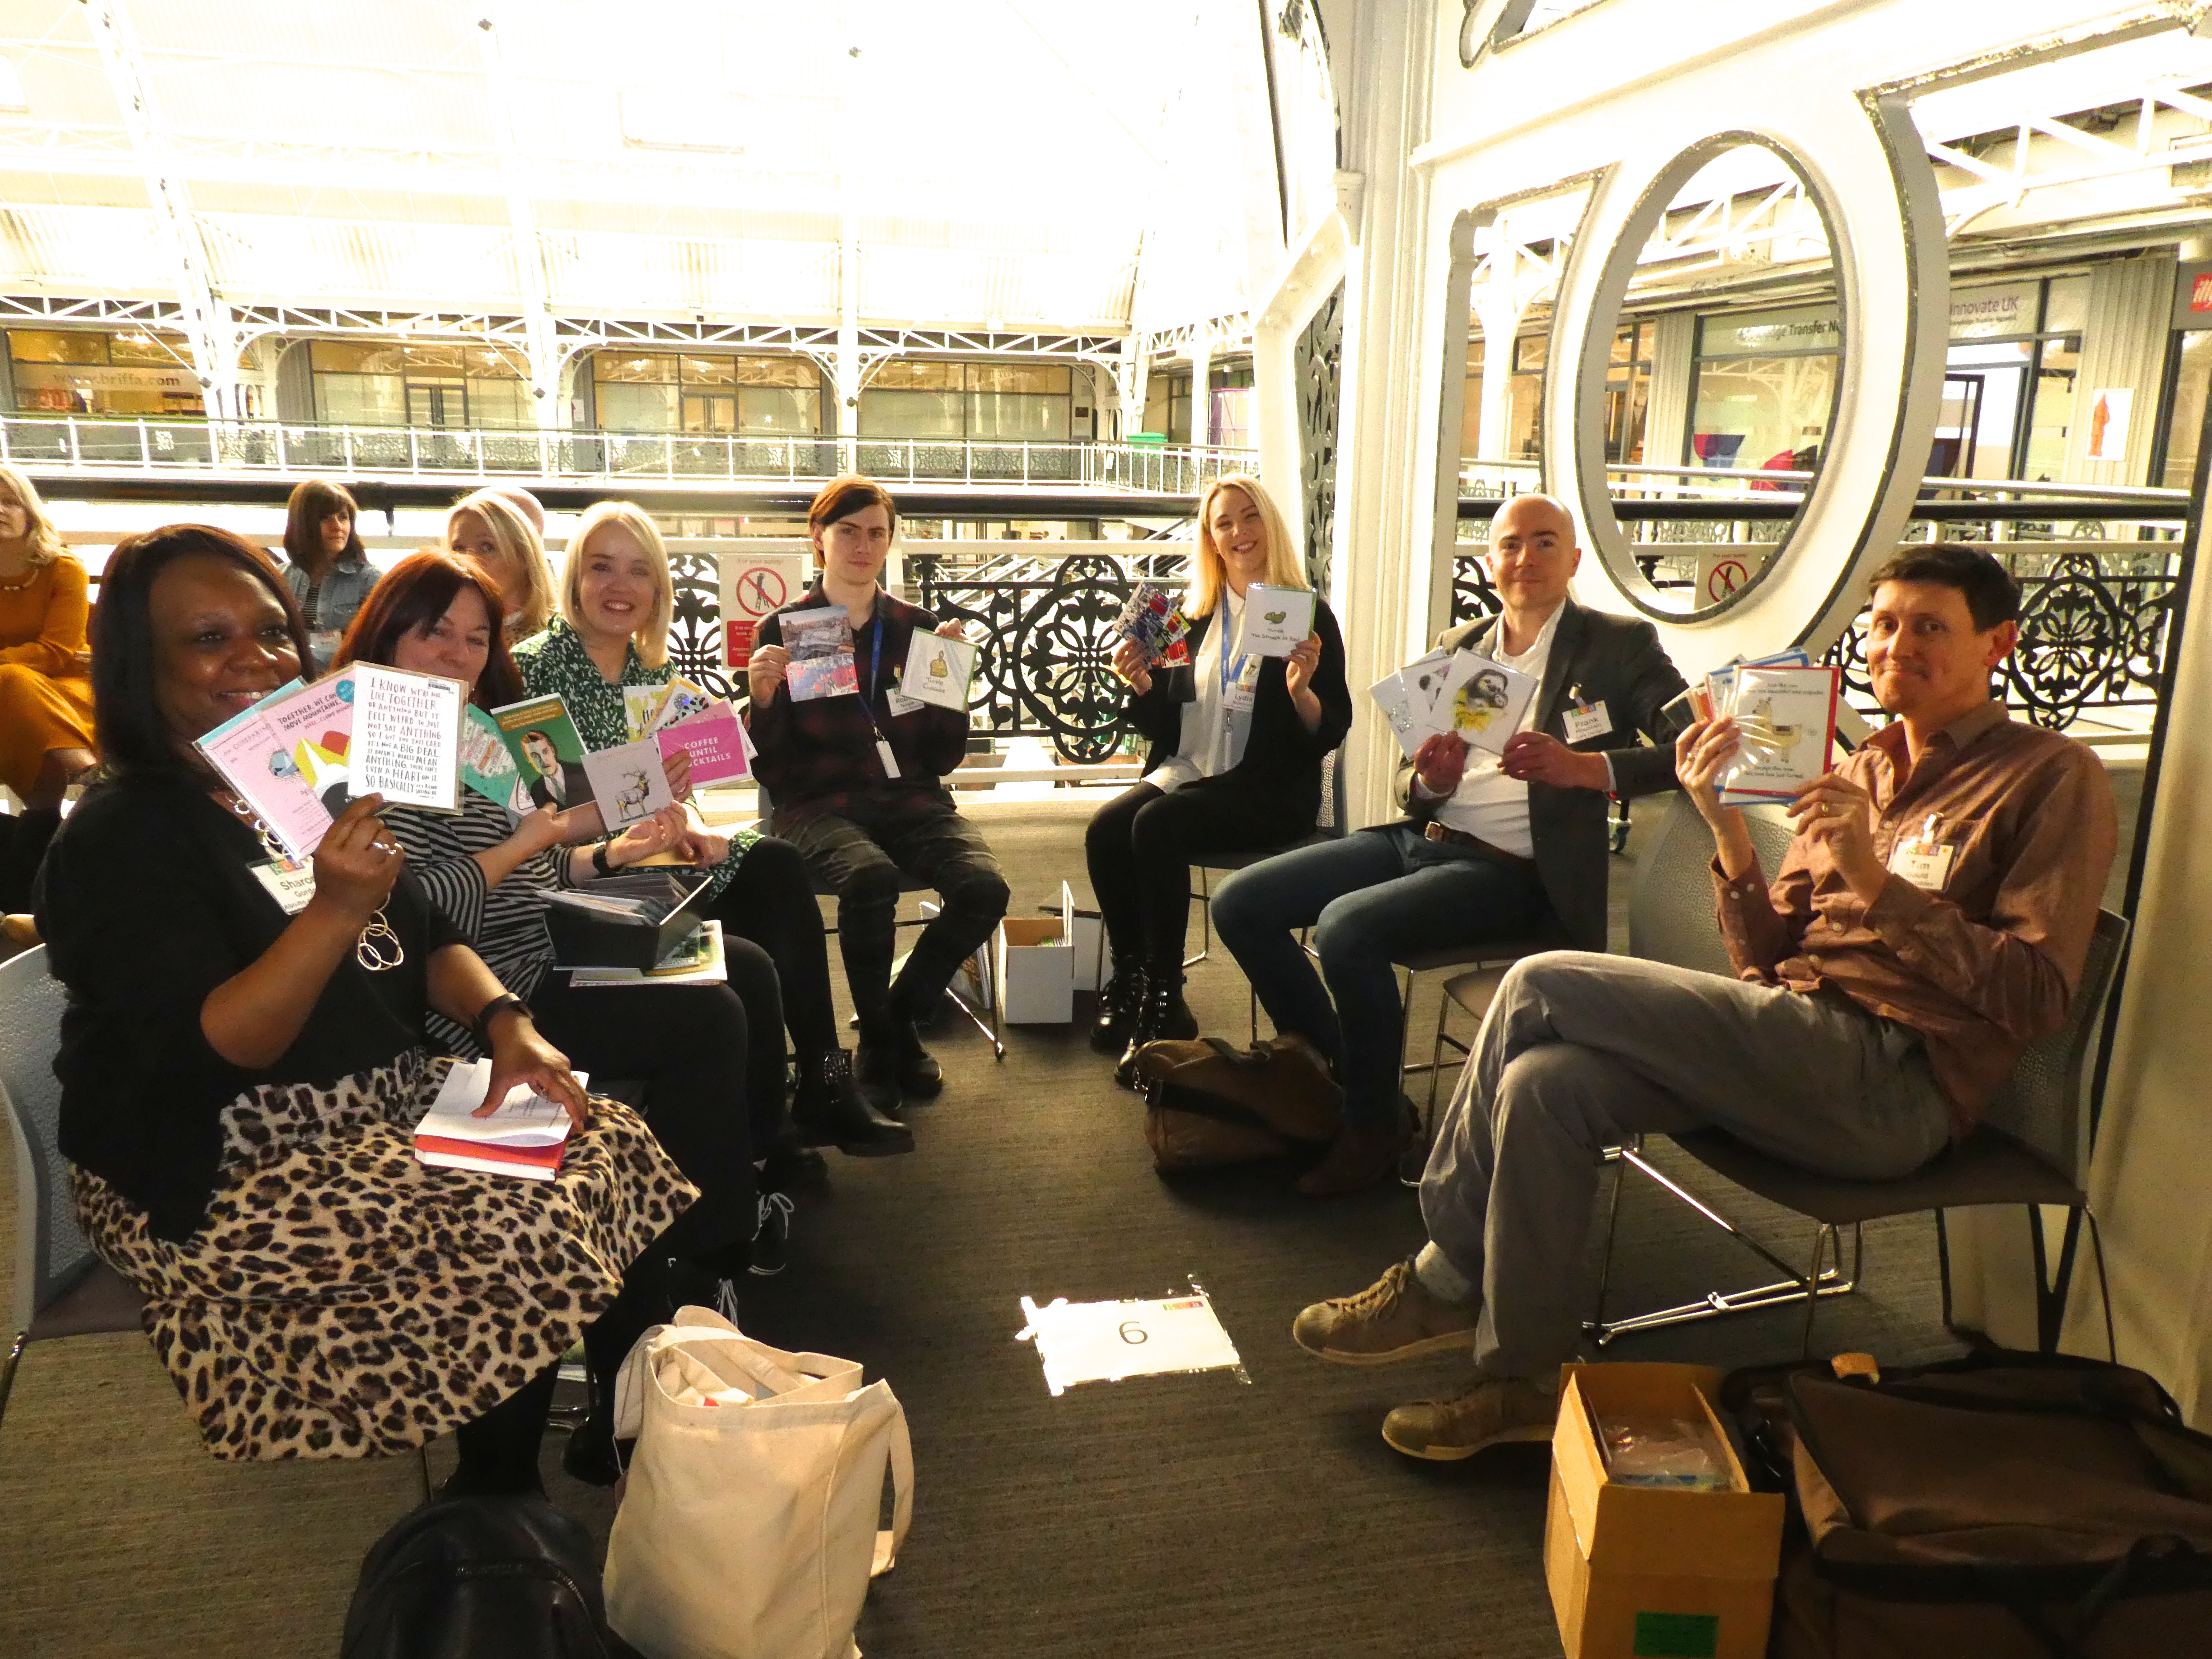 Above: Just prior to pitching, publishers hold up their cards to make the 'dragons' selection easier.